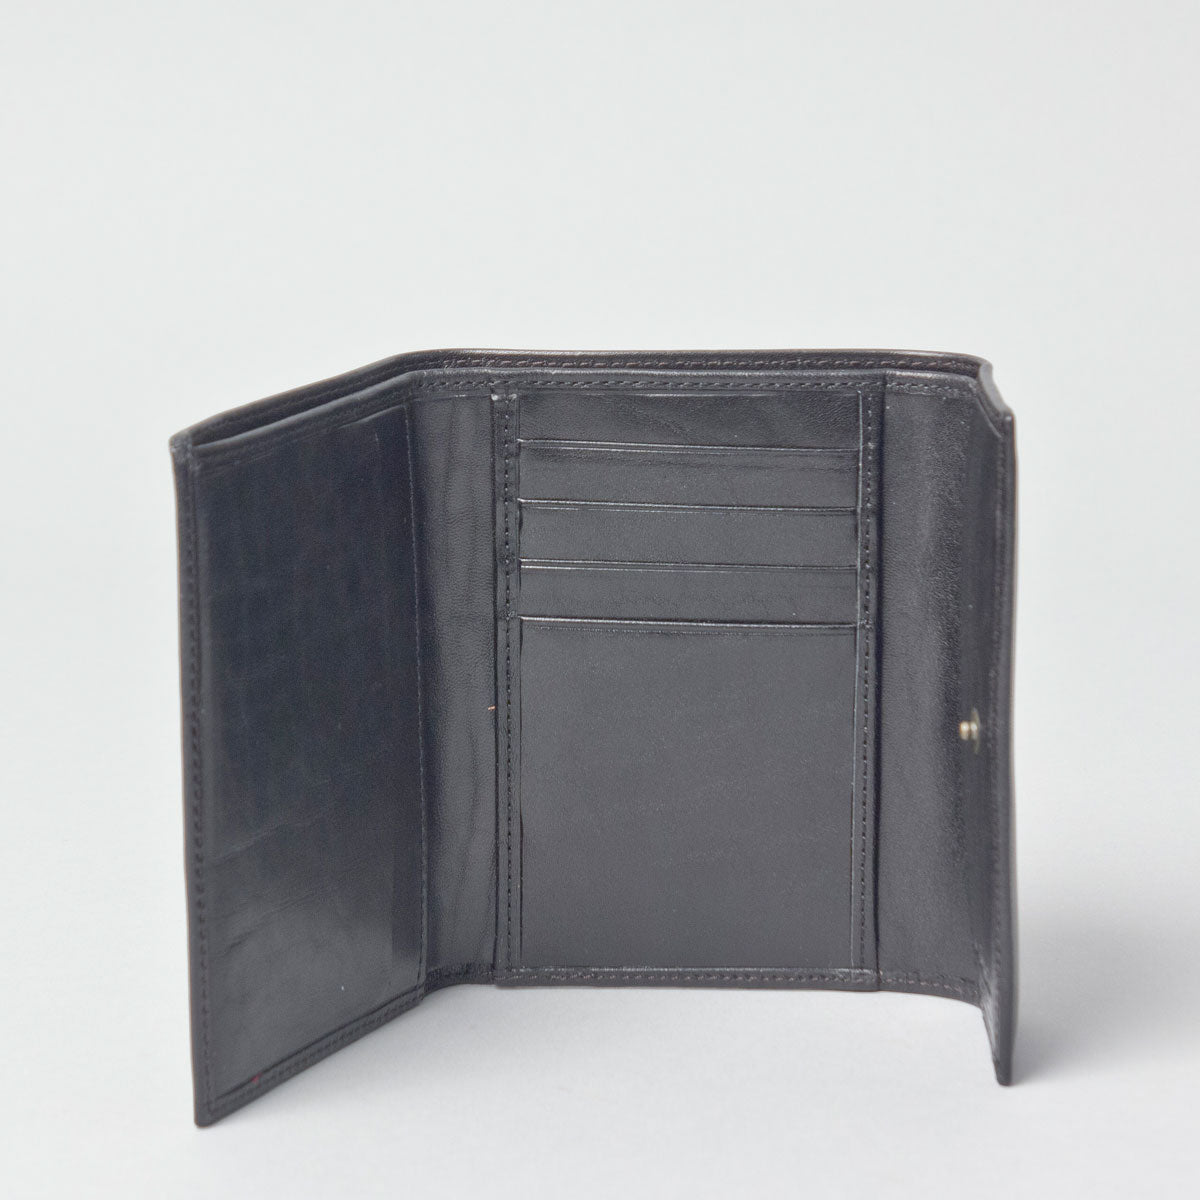 Image 1 of the 'Cetona' Black Veg-Tanned Multipurpose Wallet